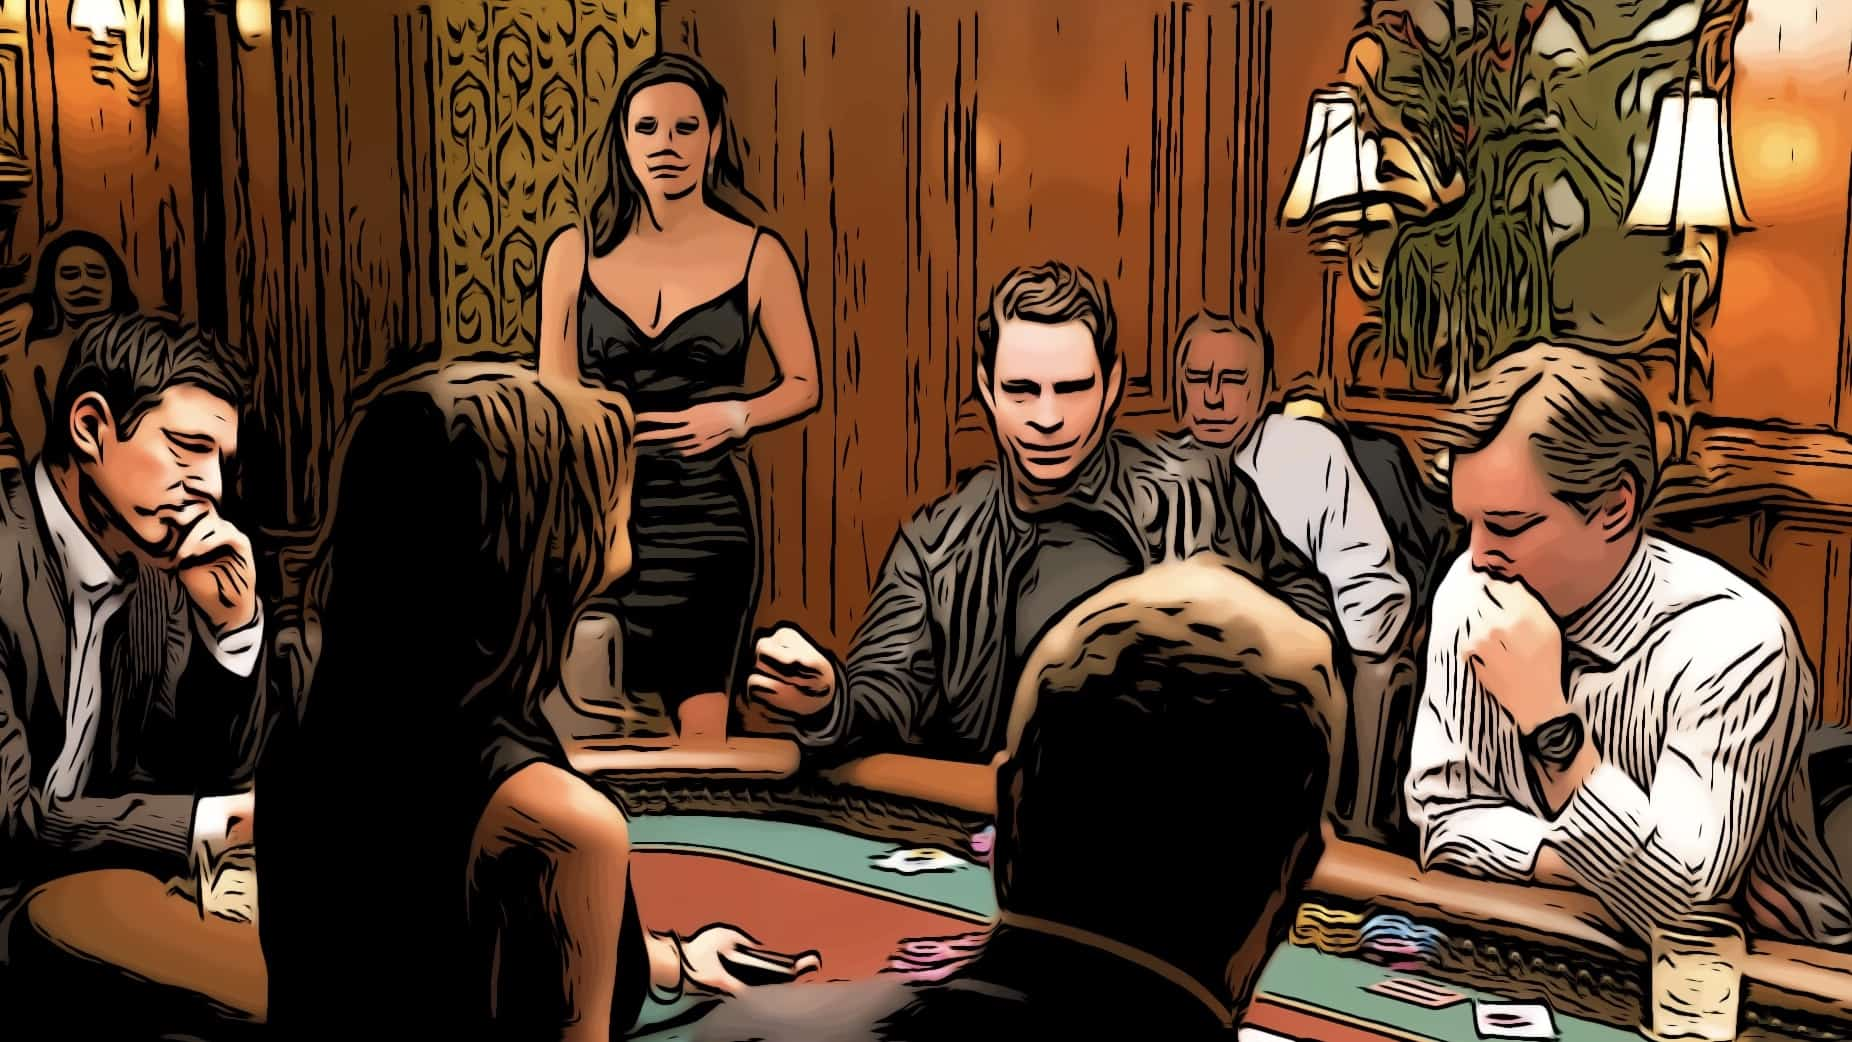 Scene in Molly's Game for best gambling movies post.